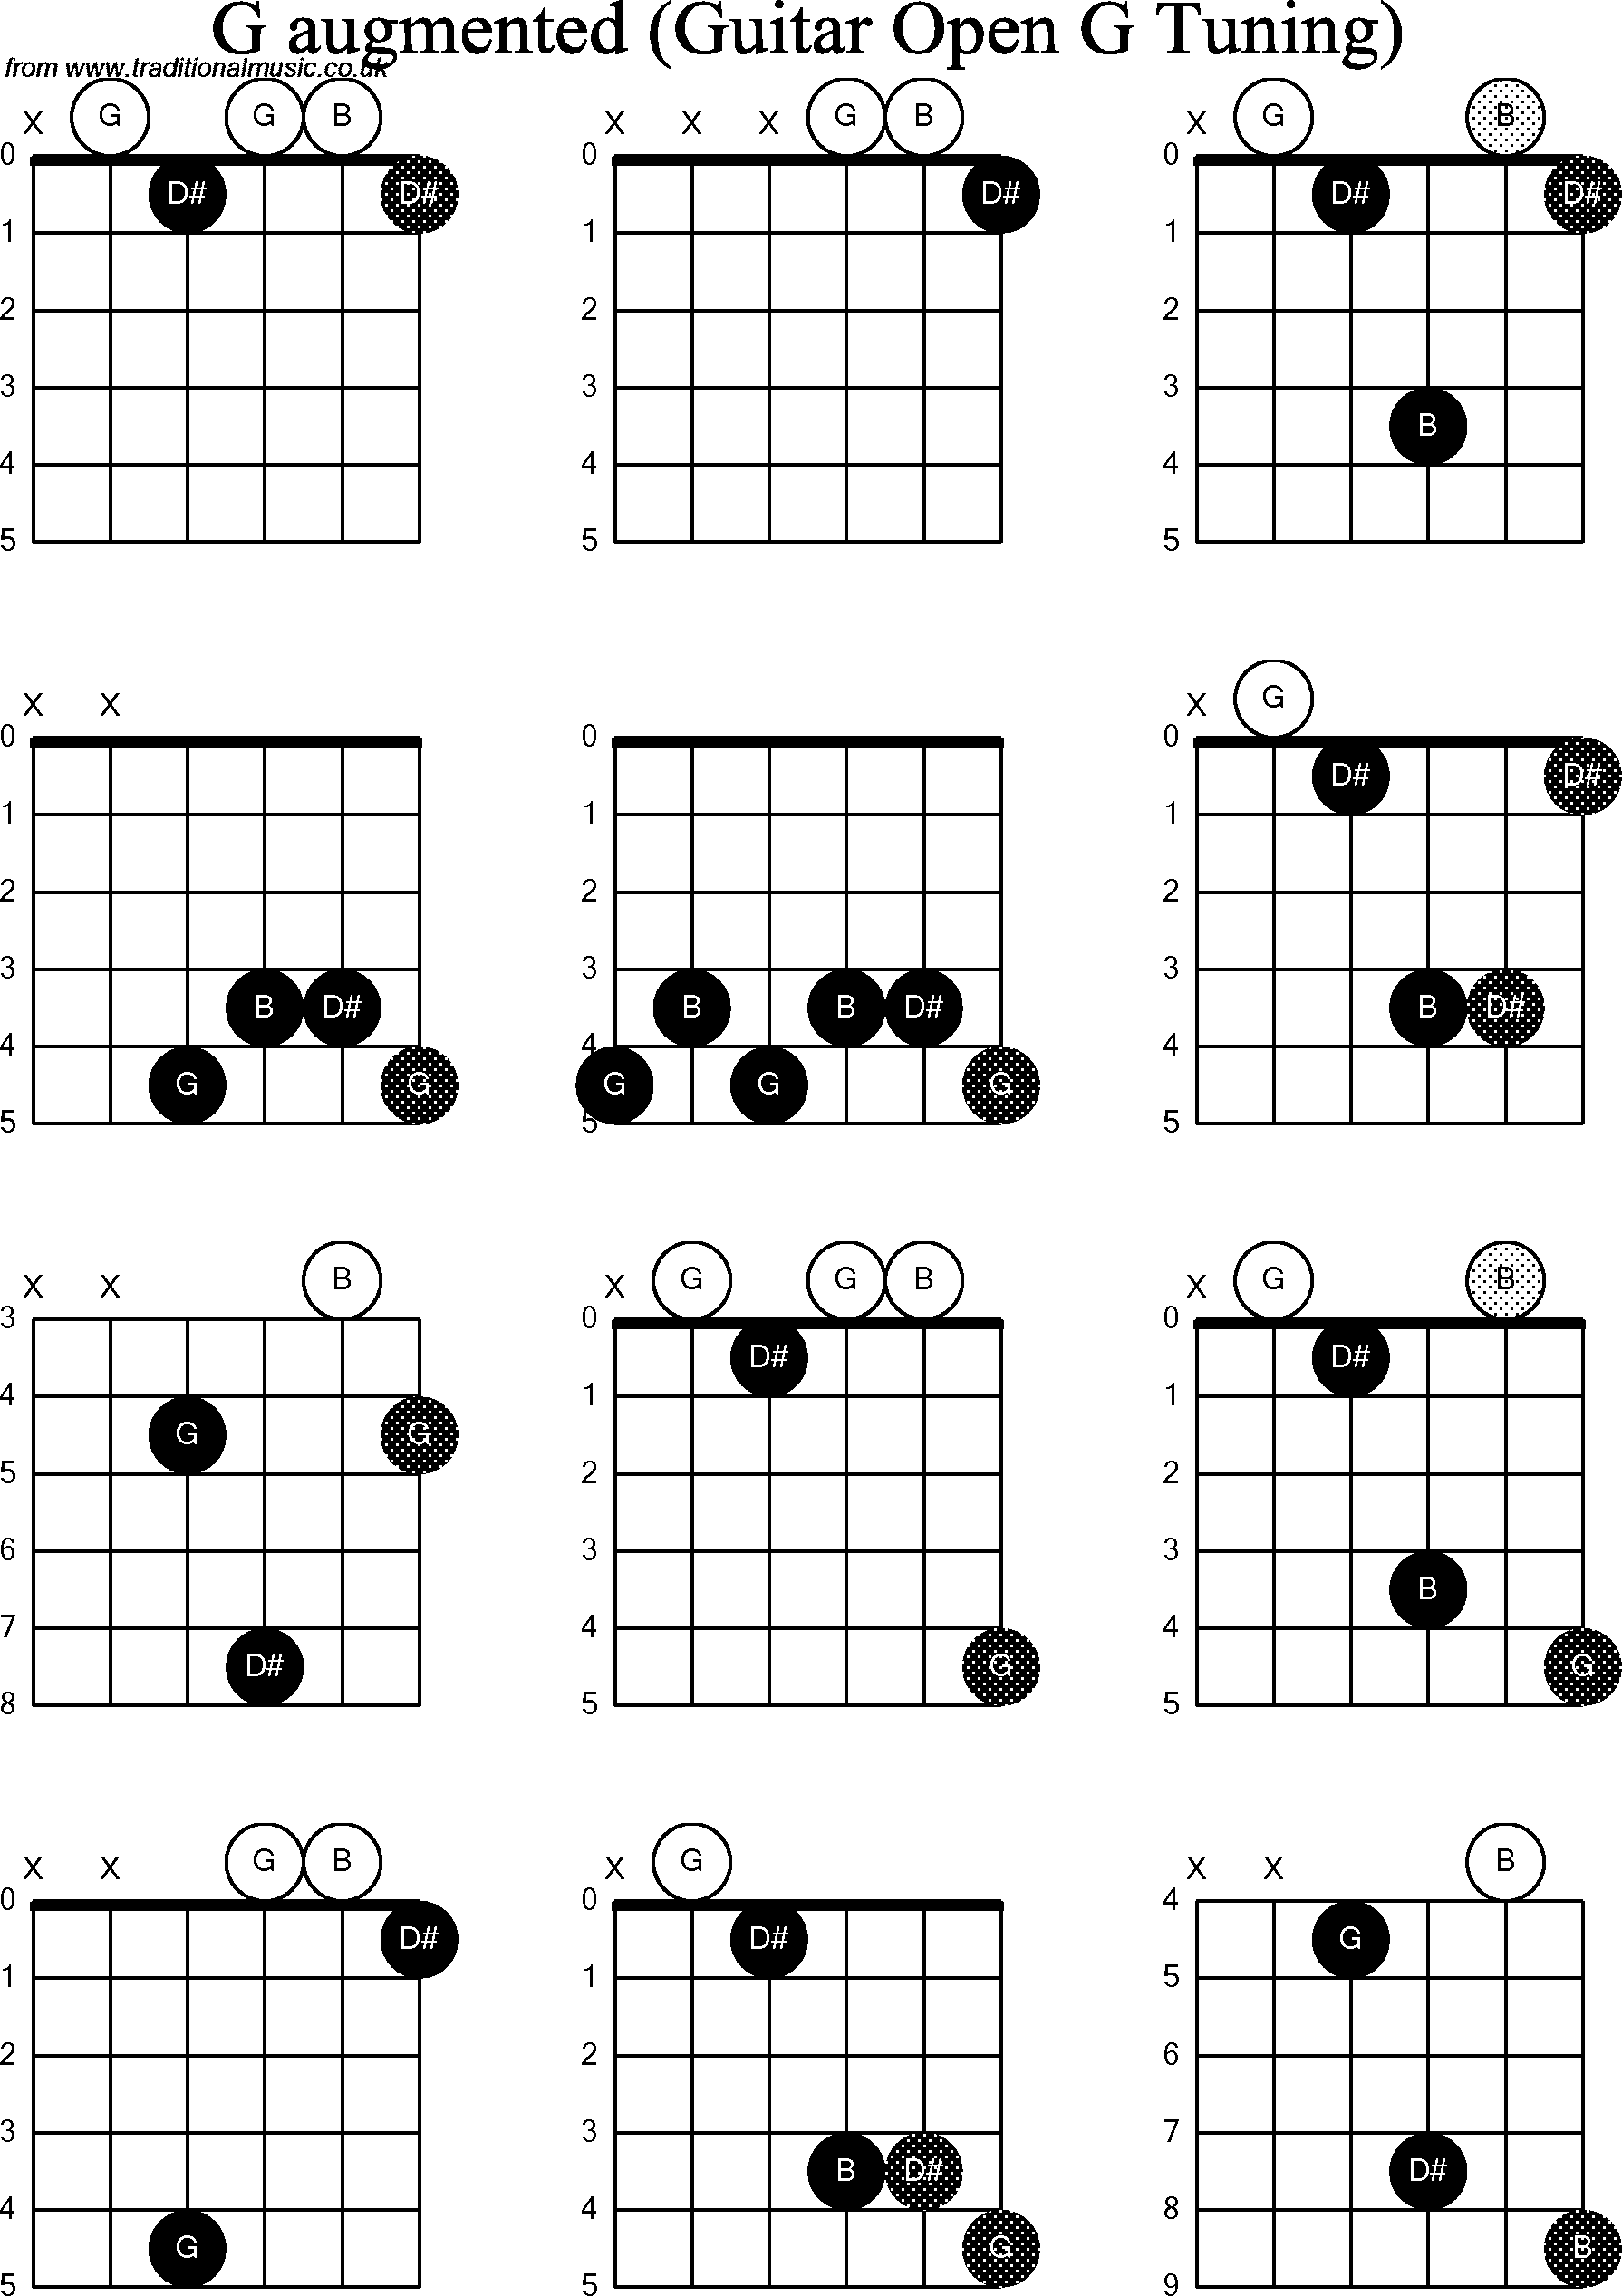 chord diagrams for  dobro g augmented